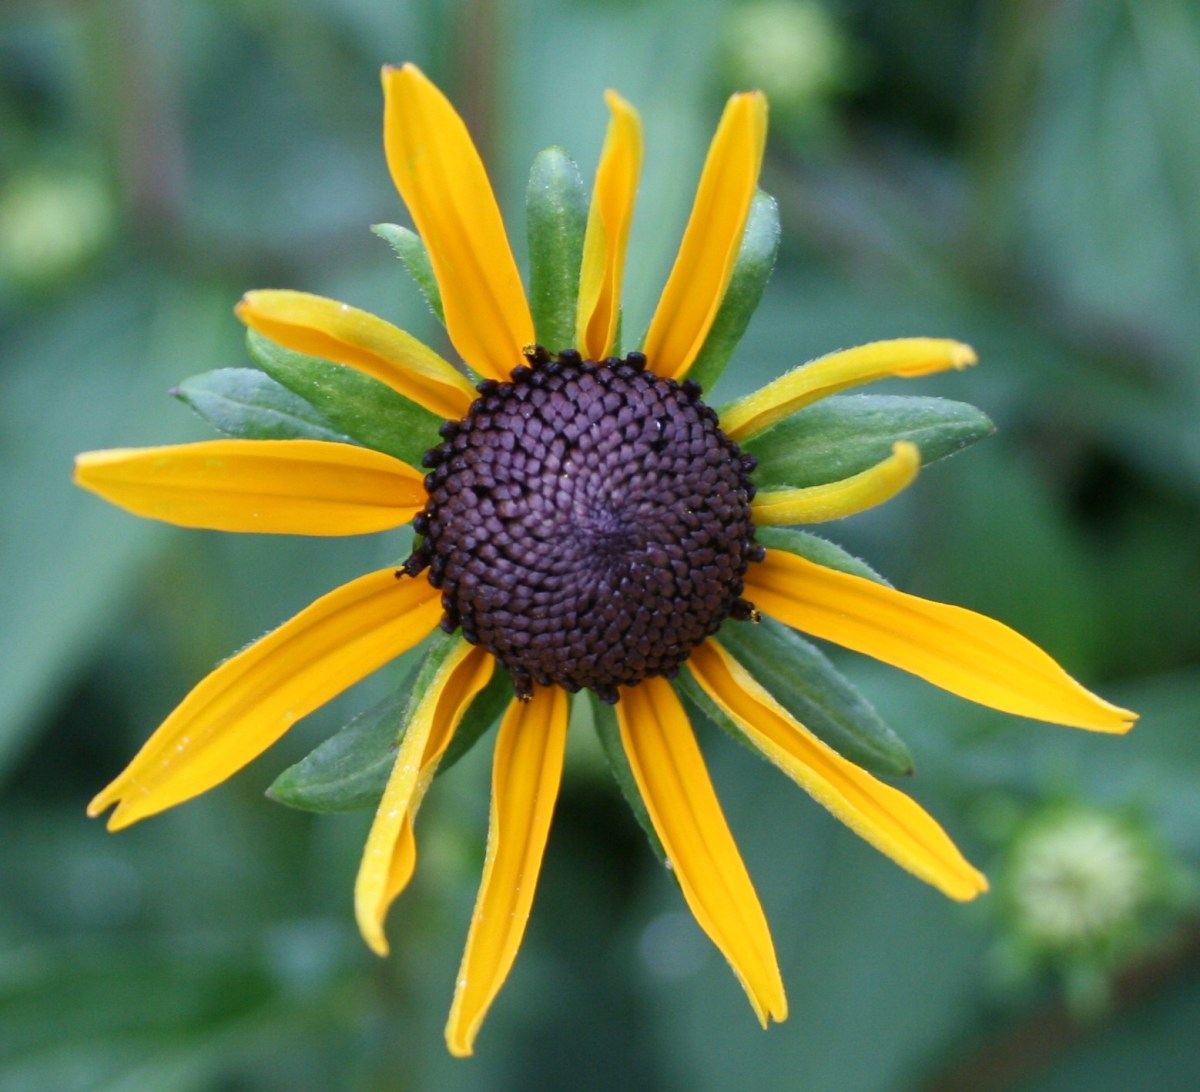 Rudbeckia may take days to fully unfurl.